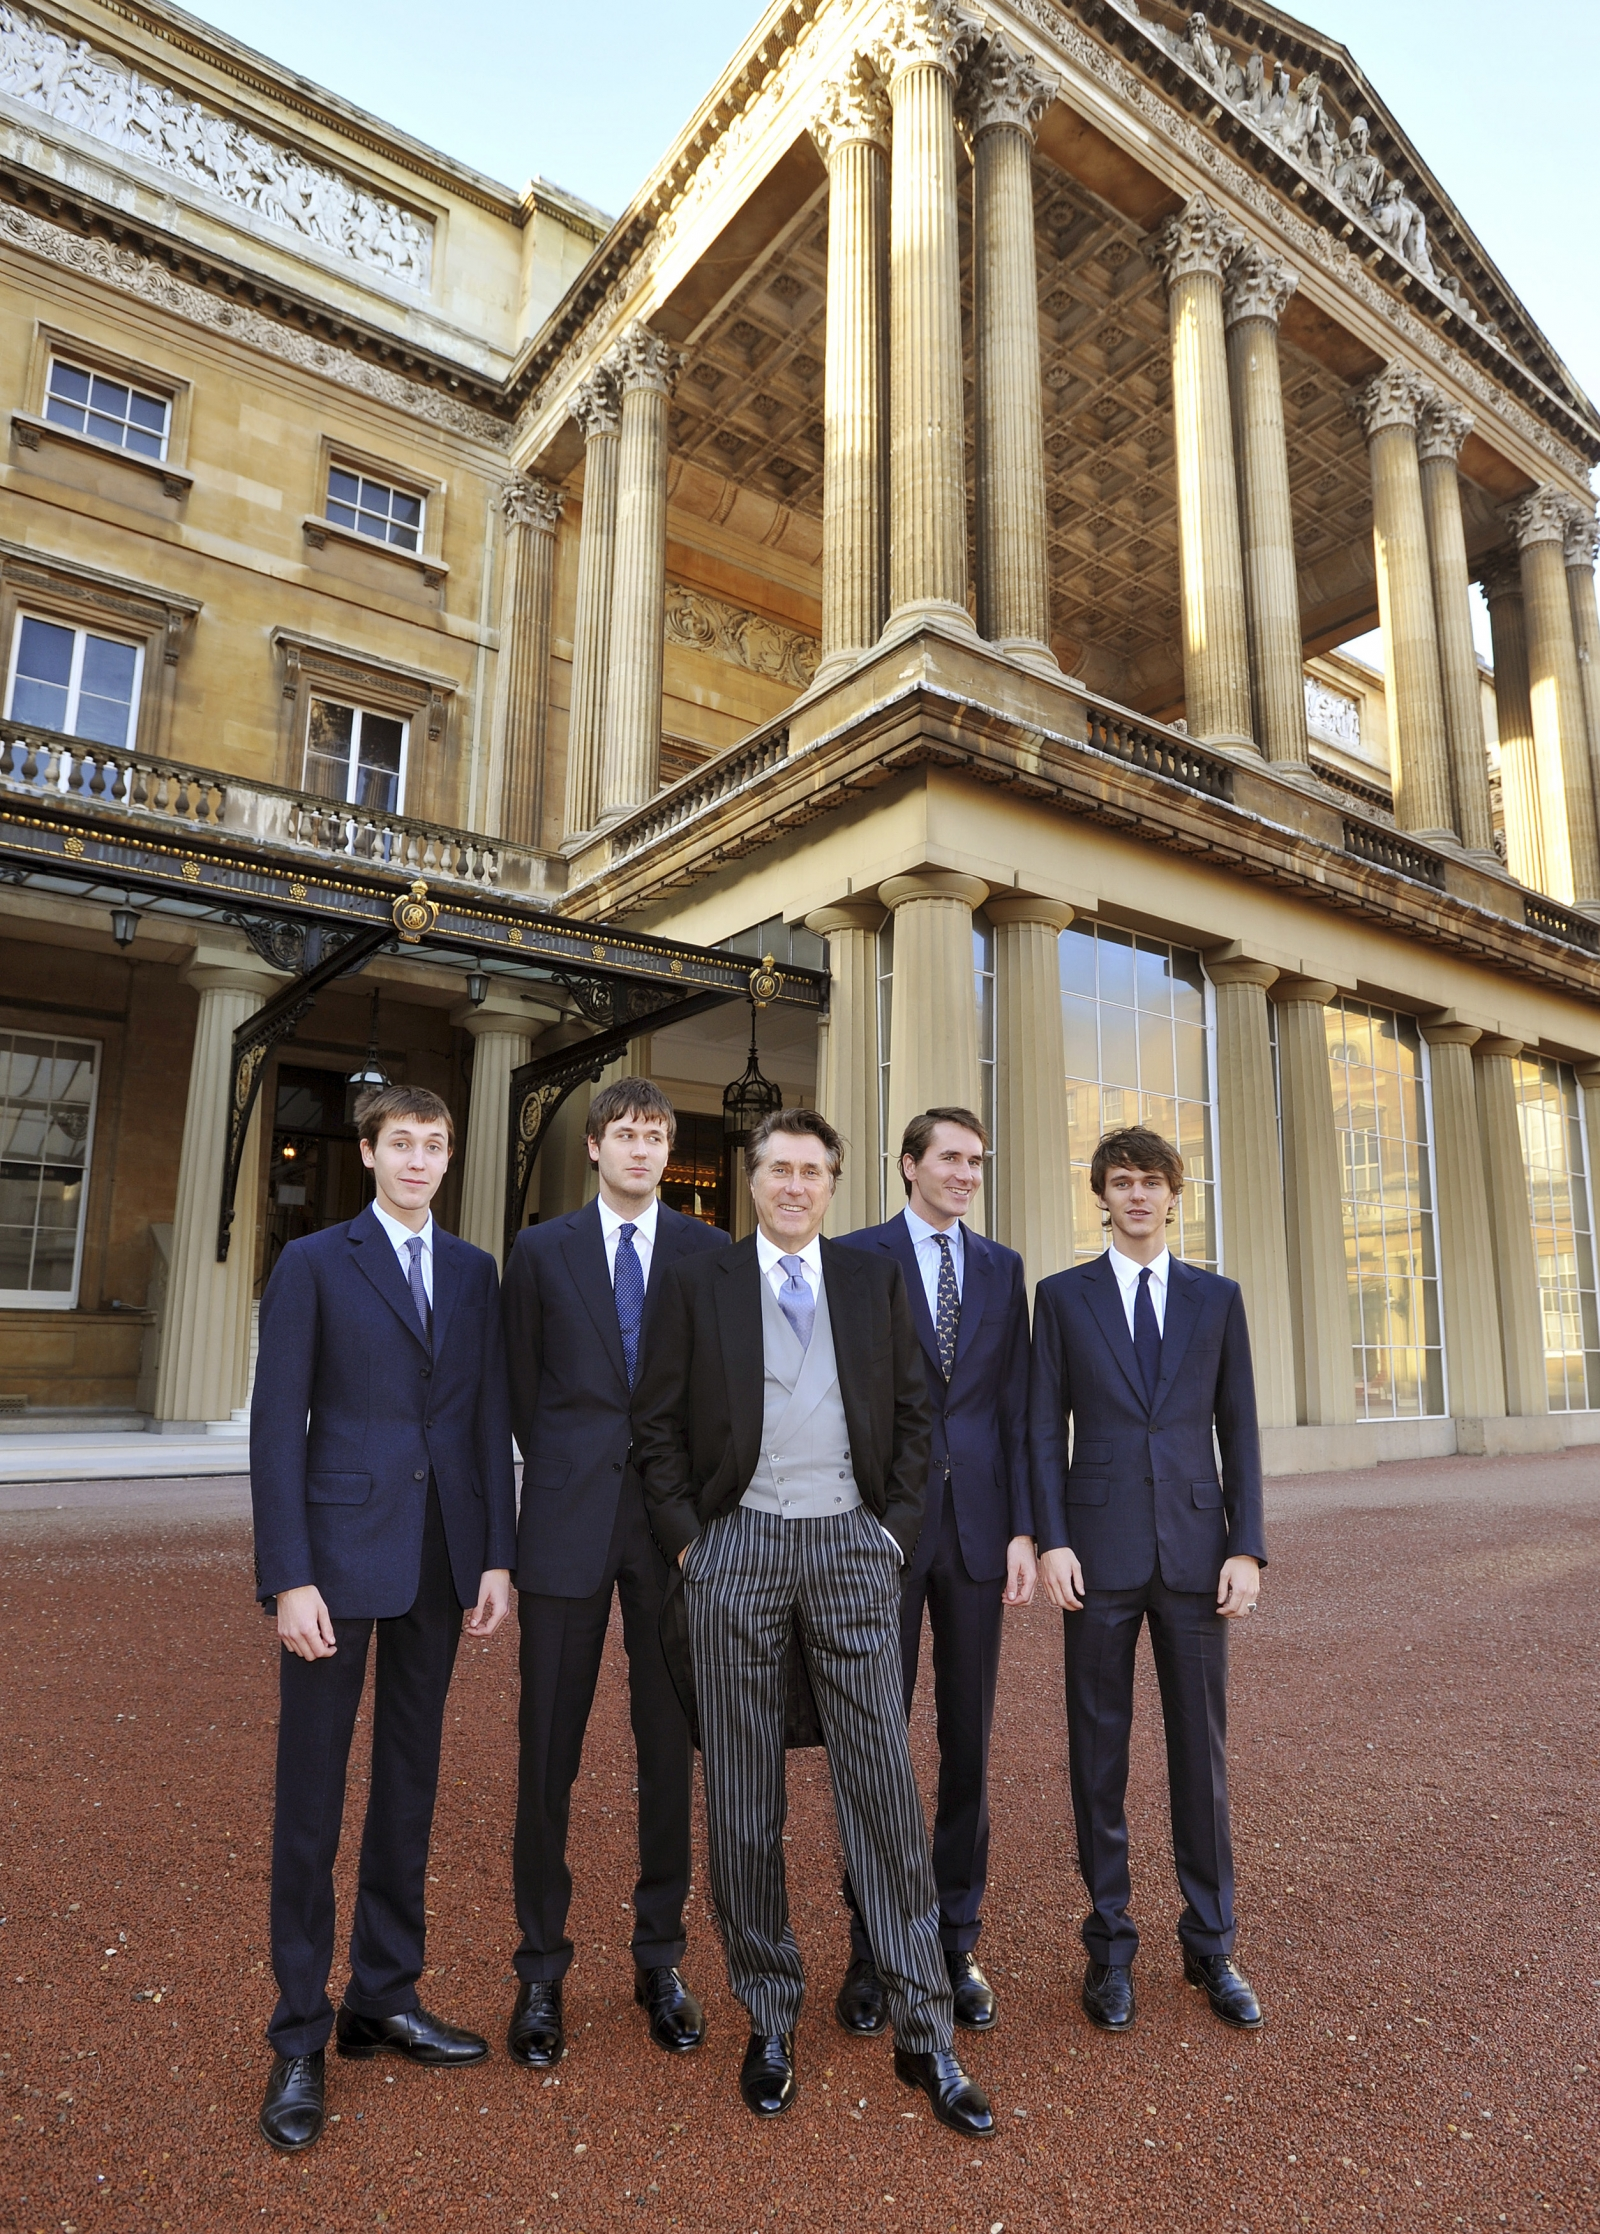 Bryan Ferry (C), poses for a photograph with his four son's (L-R) Merlin, Isaac, Otis and Tara